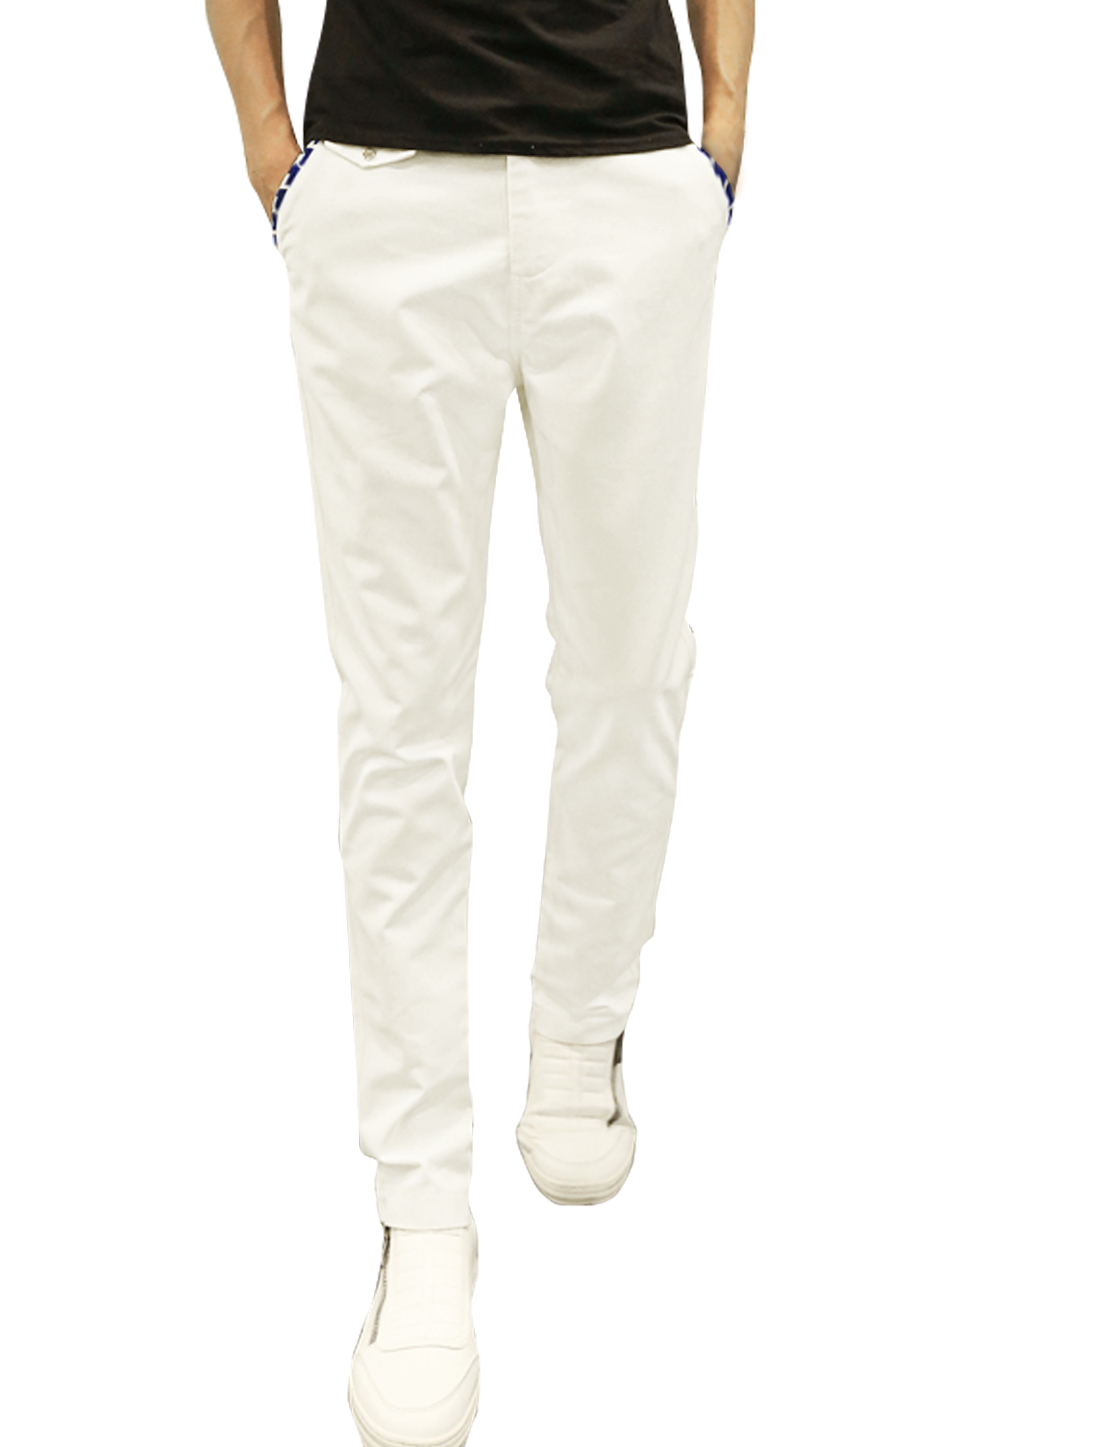 Men Natural Waist Zip Fly Four Pockets Tapered Casual Pants White W30